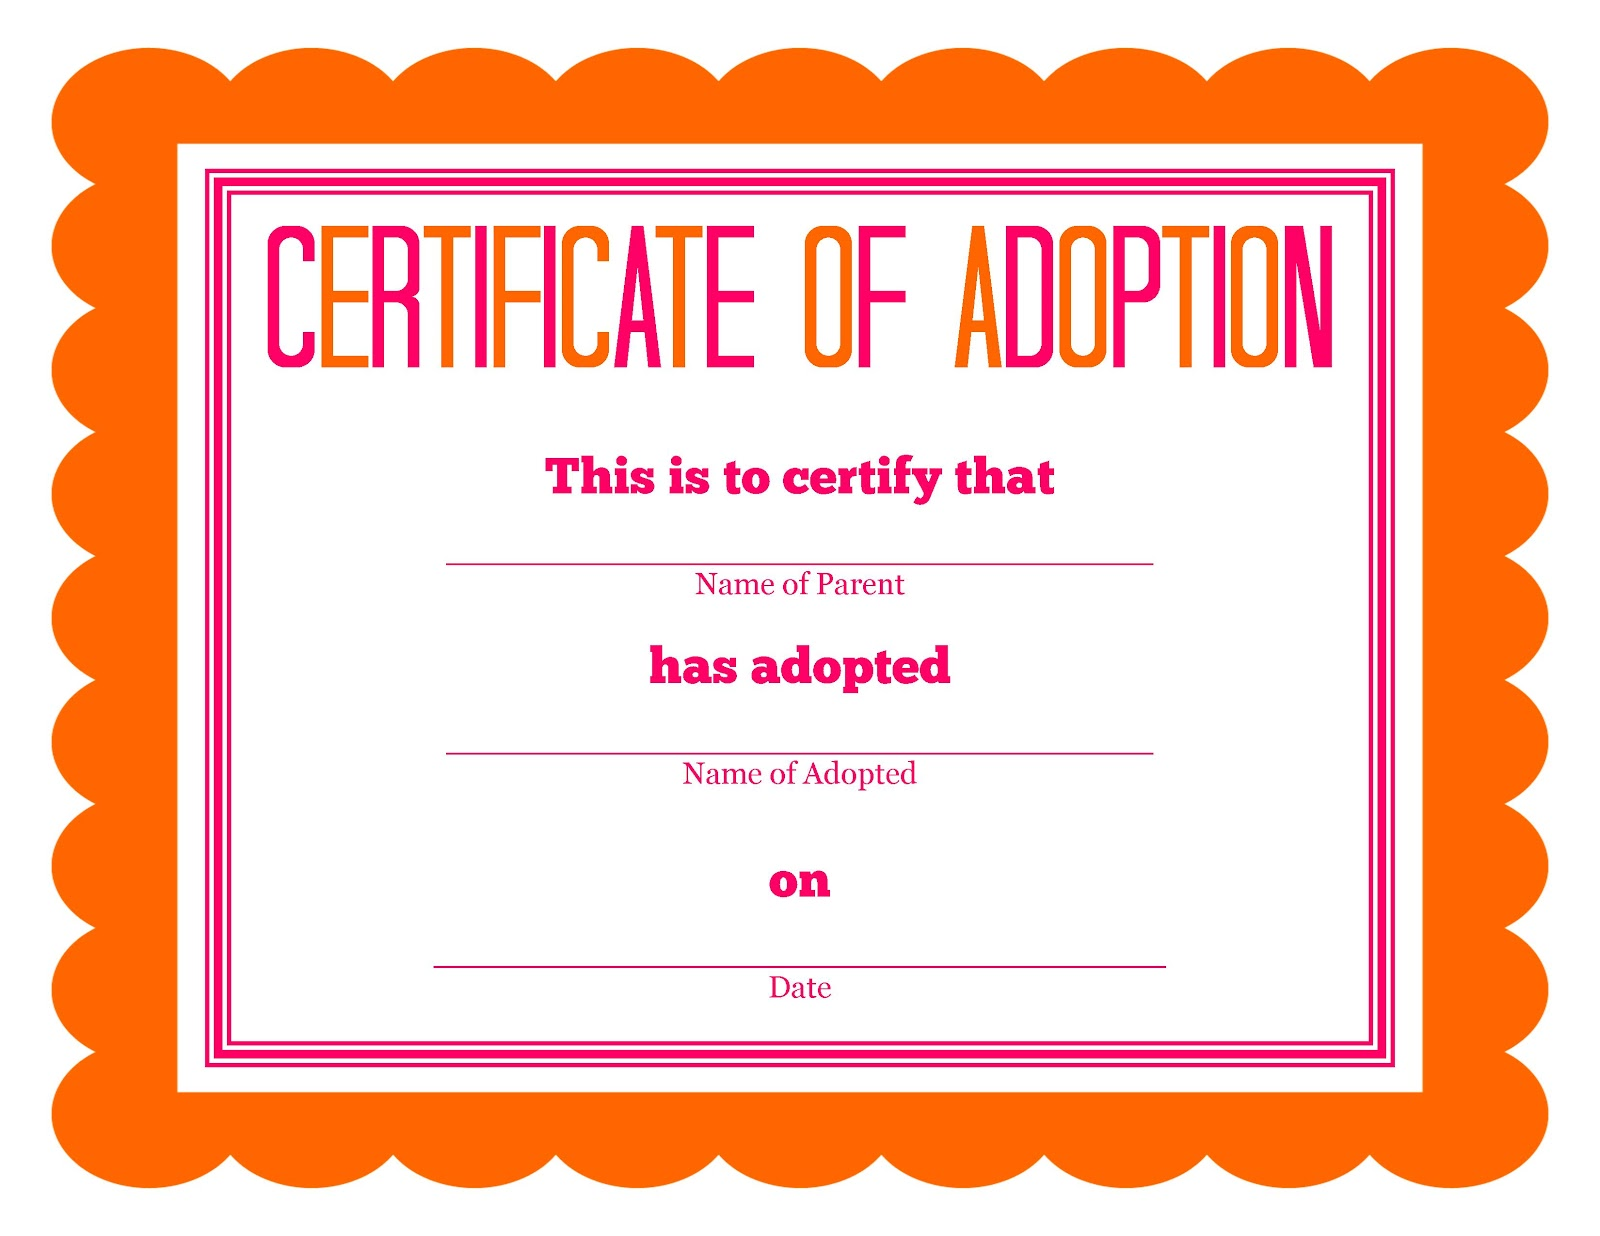 ortl adoption the daily bastardette adoption certificate